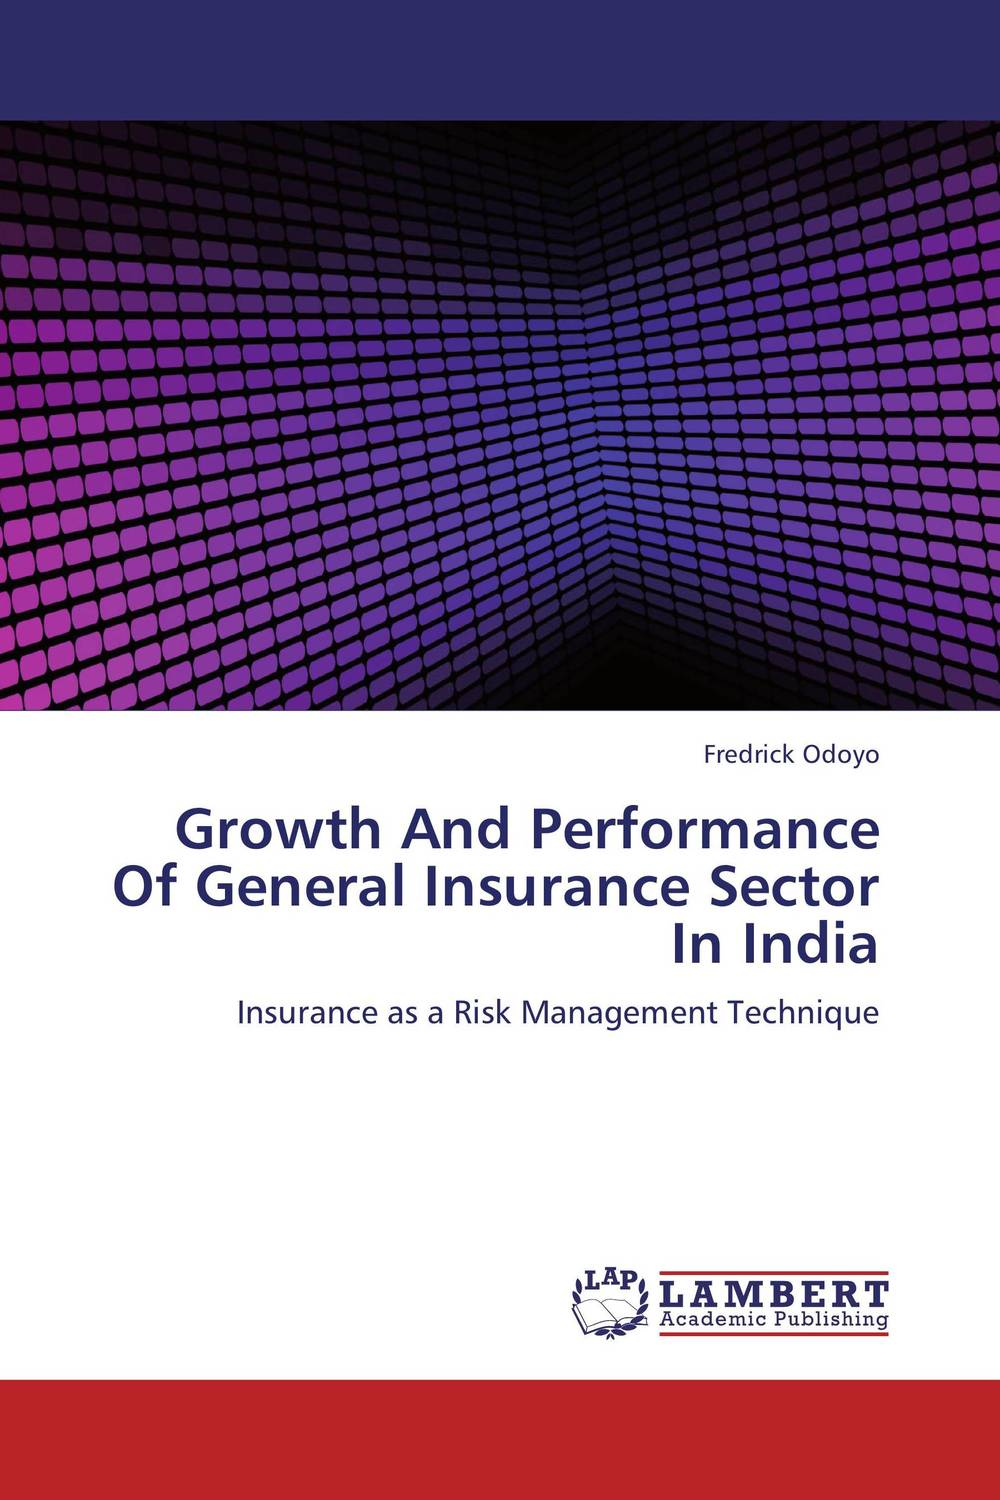 Growth And Performance Of General Insurance Sector In India economic reforms and growth of insurance sector in india